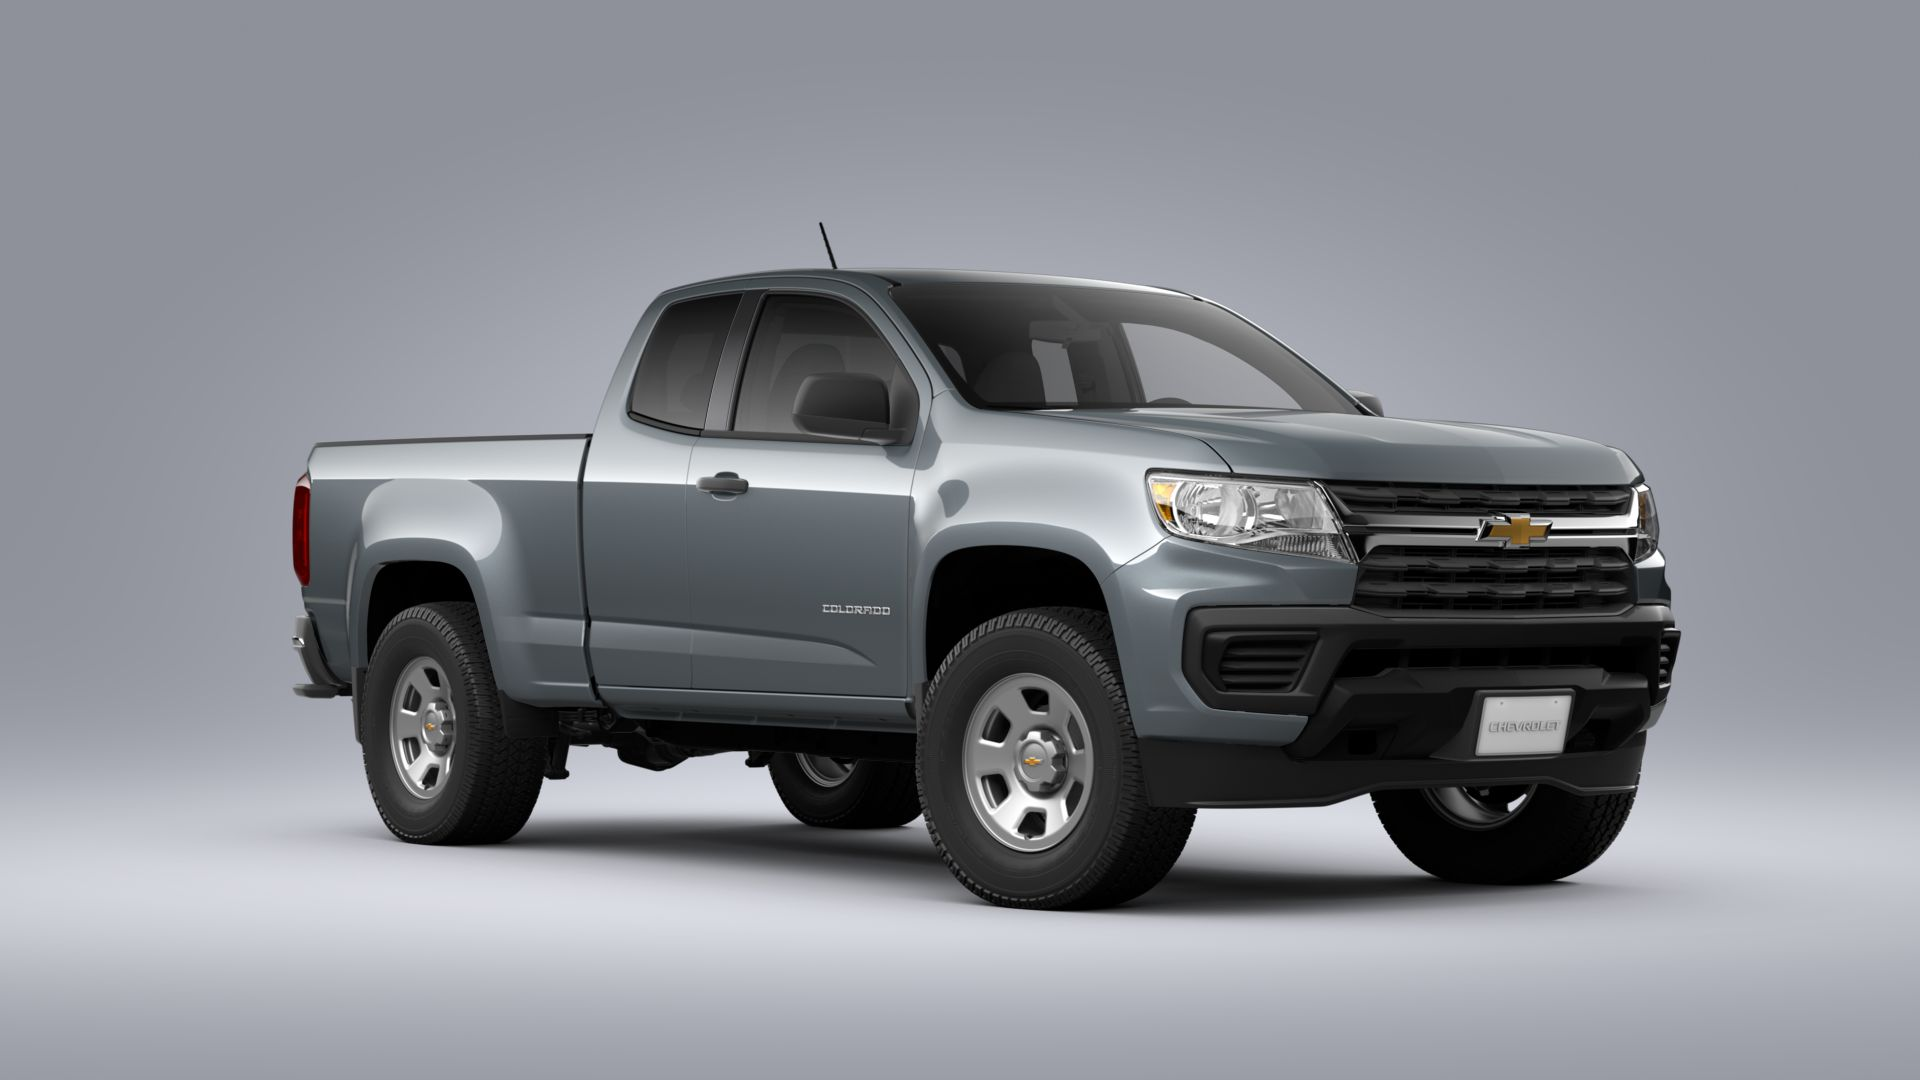 2021 Chevrolet Colorado WT